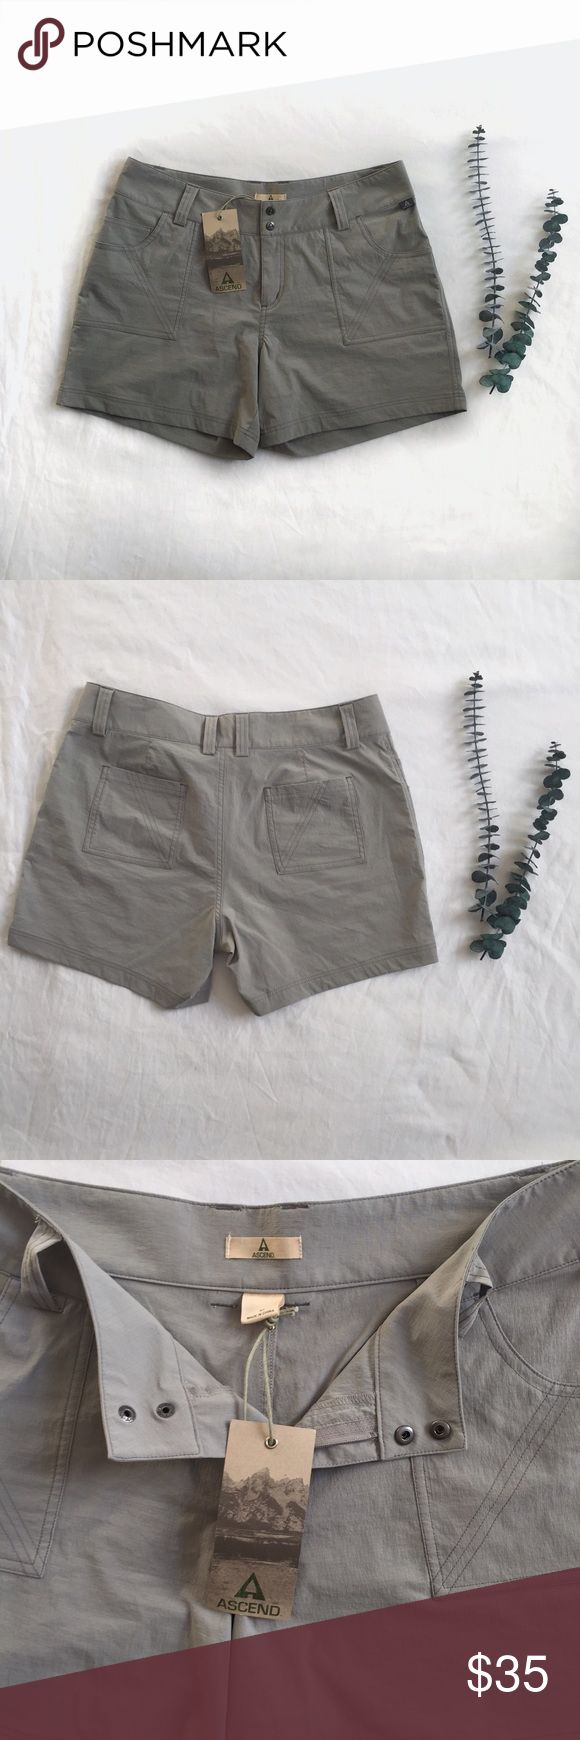 Ascend Hiking Shorts  HP  These hiking shorts are NWT and are in perfect unused condition. They fall mid thigh and are water proof. They have several pockets and are a lovely neutral gray color. Perfect for any adventures you have in mind. They got true to size.   Open to offers & no trades  Smoke & pet free home 25% off 2 or more items ascend Shorts